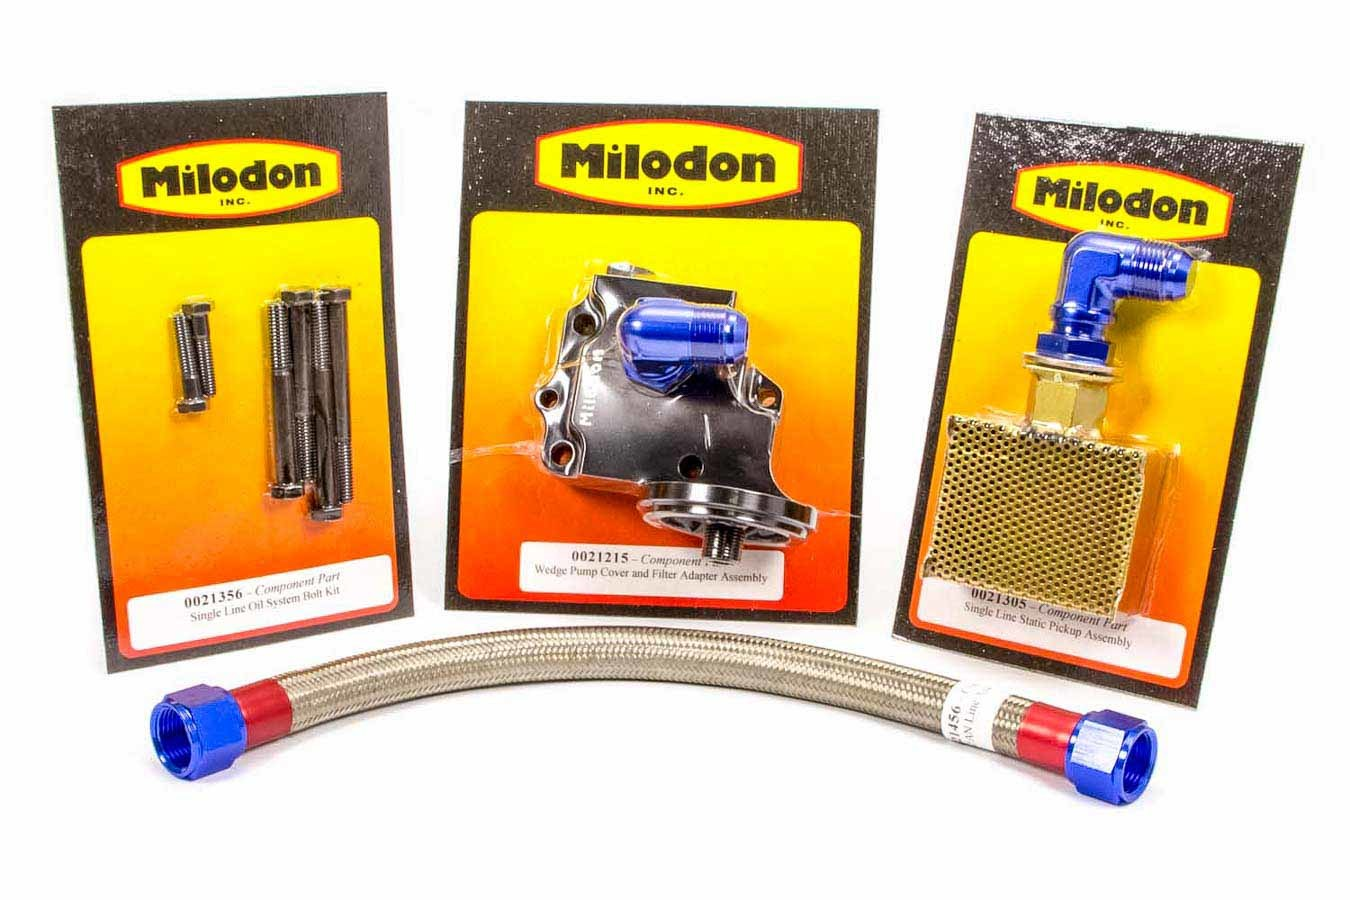 Milodon 21010 External Oil System, Single Braided Stainless Line / Static Pickup / Bolts / Fittings / O-Rings Included, Mopar B / RB-Series, Kit